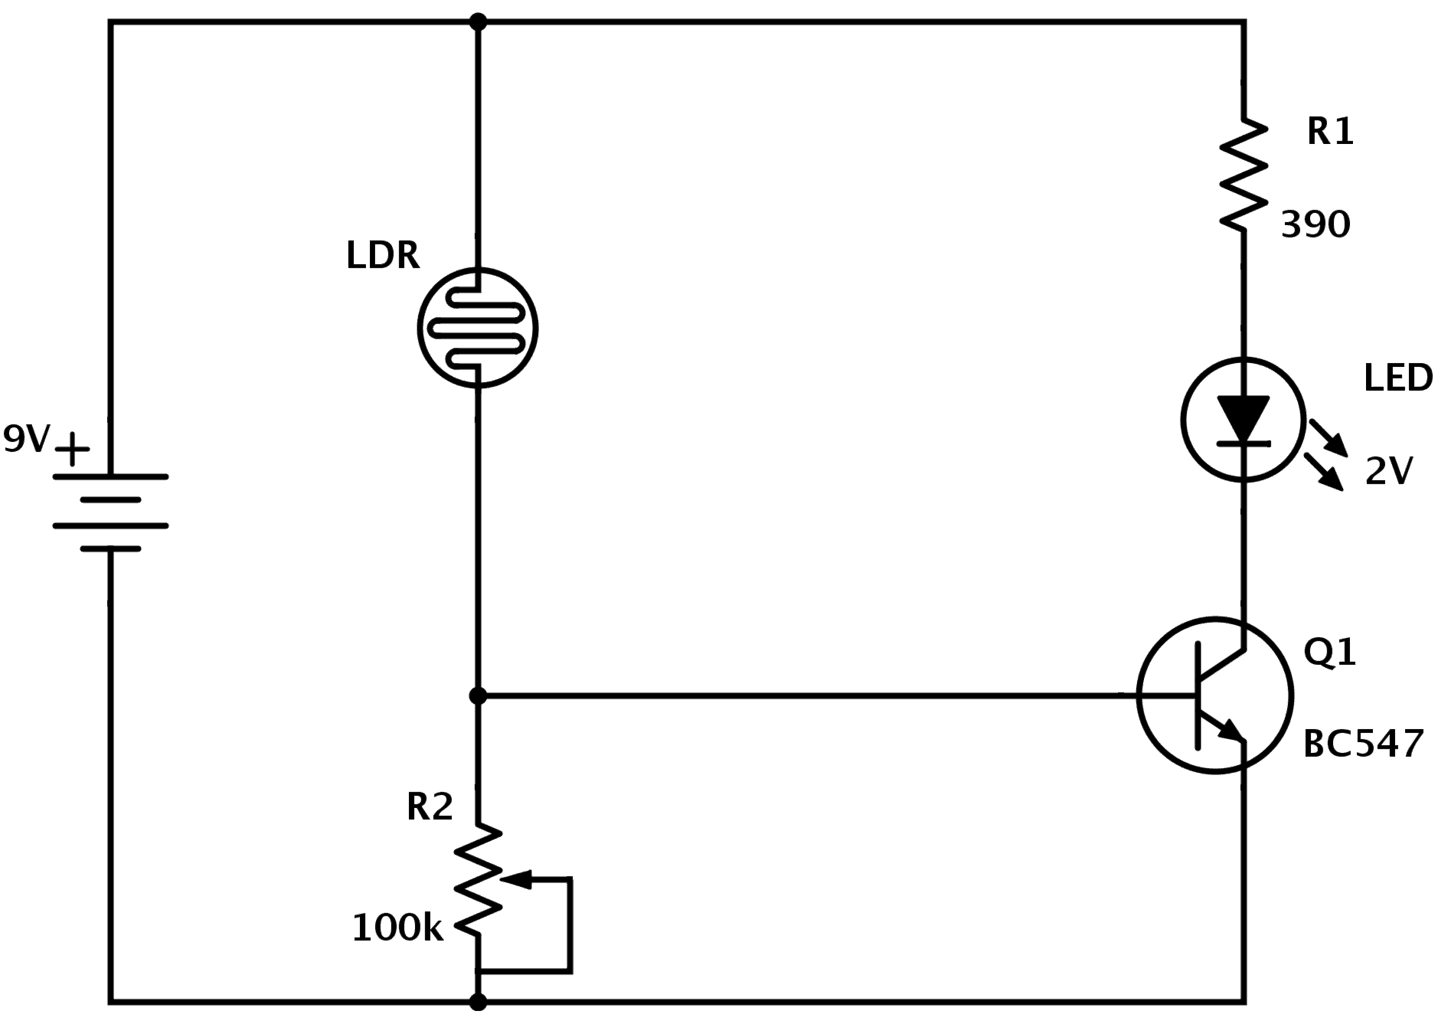 circuit diagram how to read and understand any schematic rh build electronic circuits com electronic circuit diagram free electrical circuit diagrams software